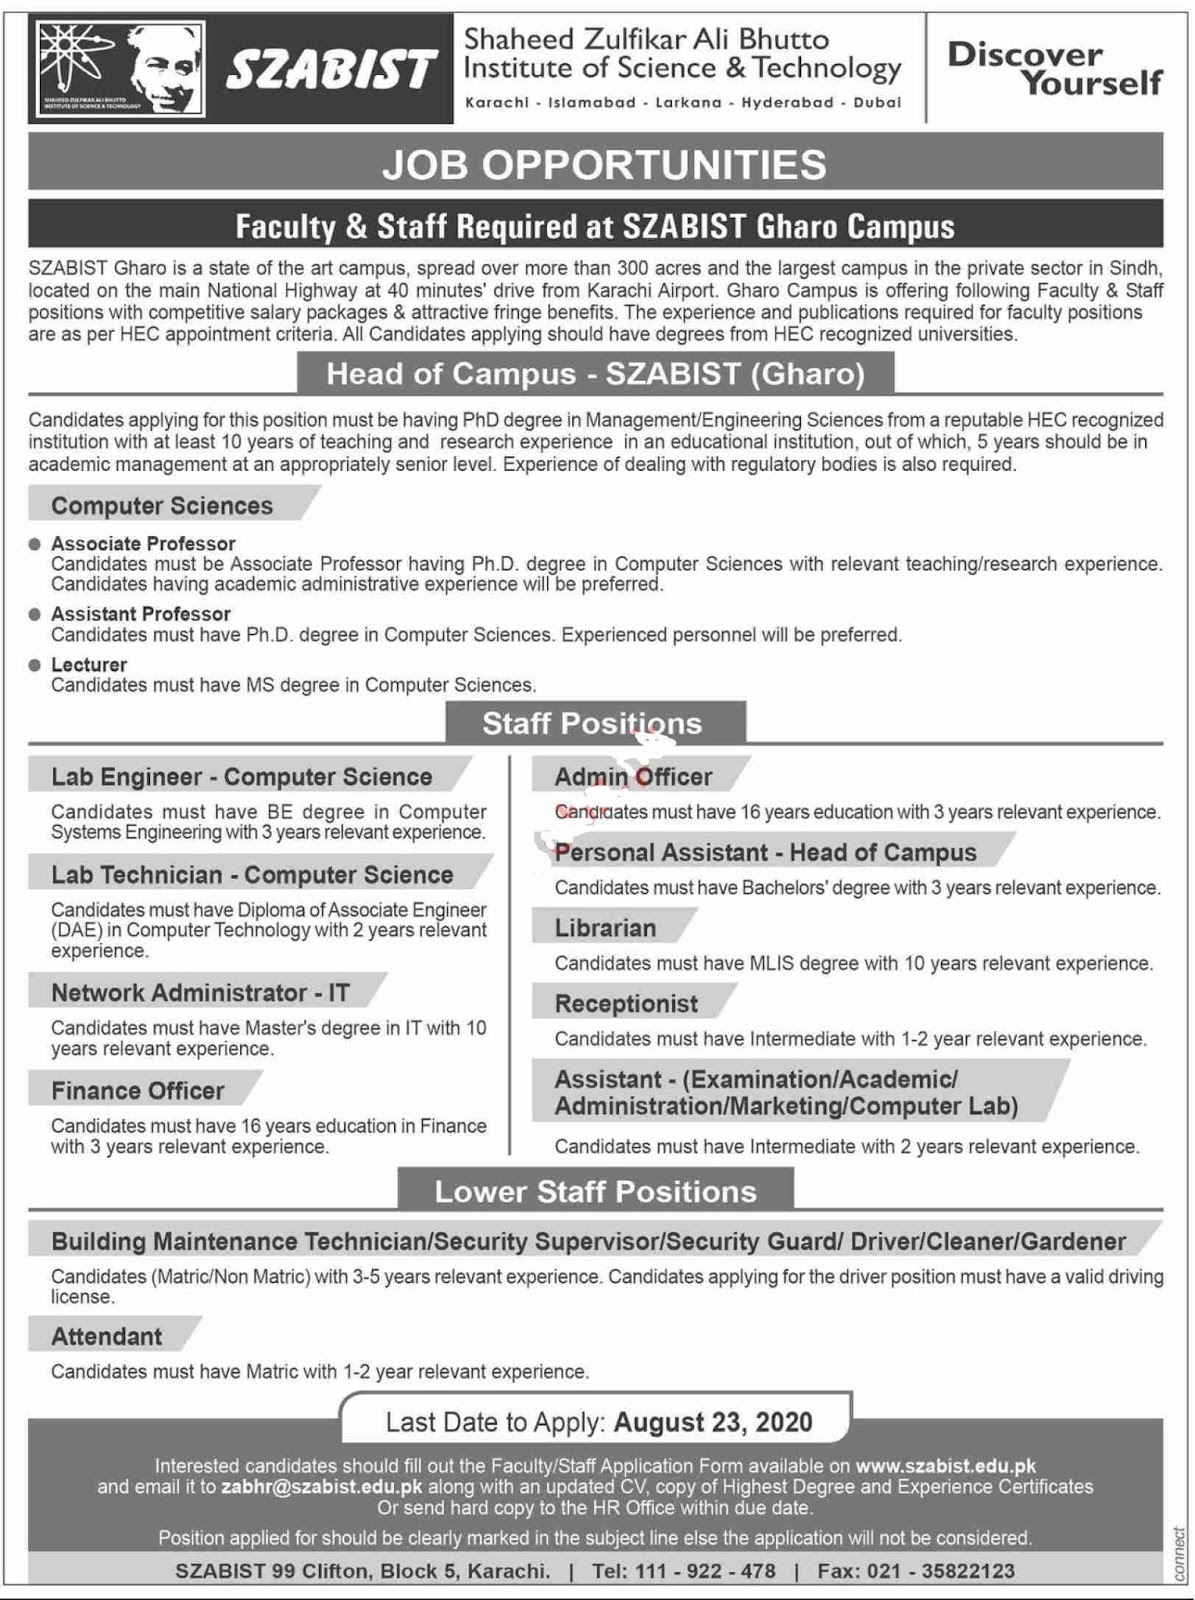 SZABIST University Gharo Campus Jobs 2020 for Assistant, Assistant Examination, Assistant Academic, Assistant Administration, Assistant Computer Lab and more